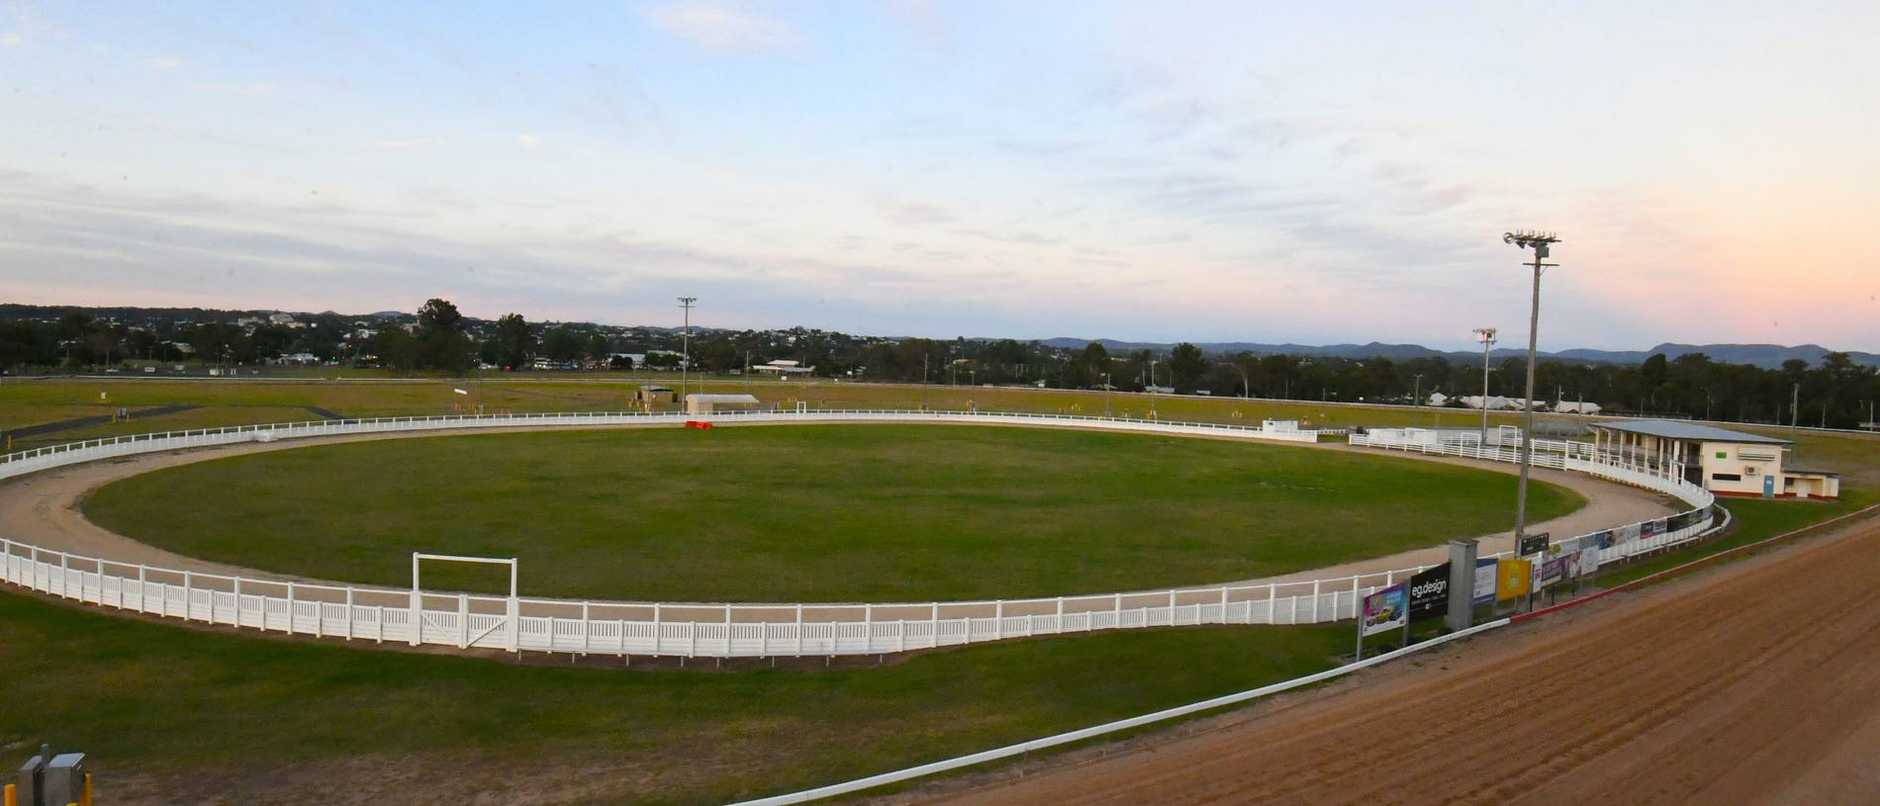 The big vacant showgrounds where the Gympie Show would have entertained thousands of people in May - Picture: Shane Zahner